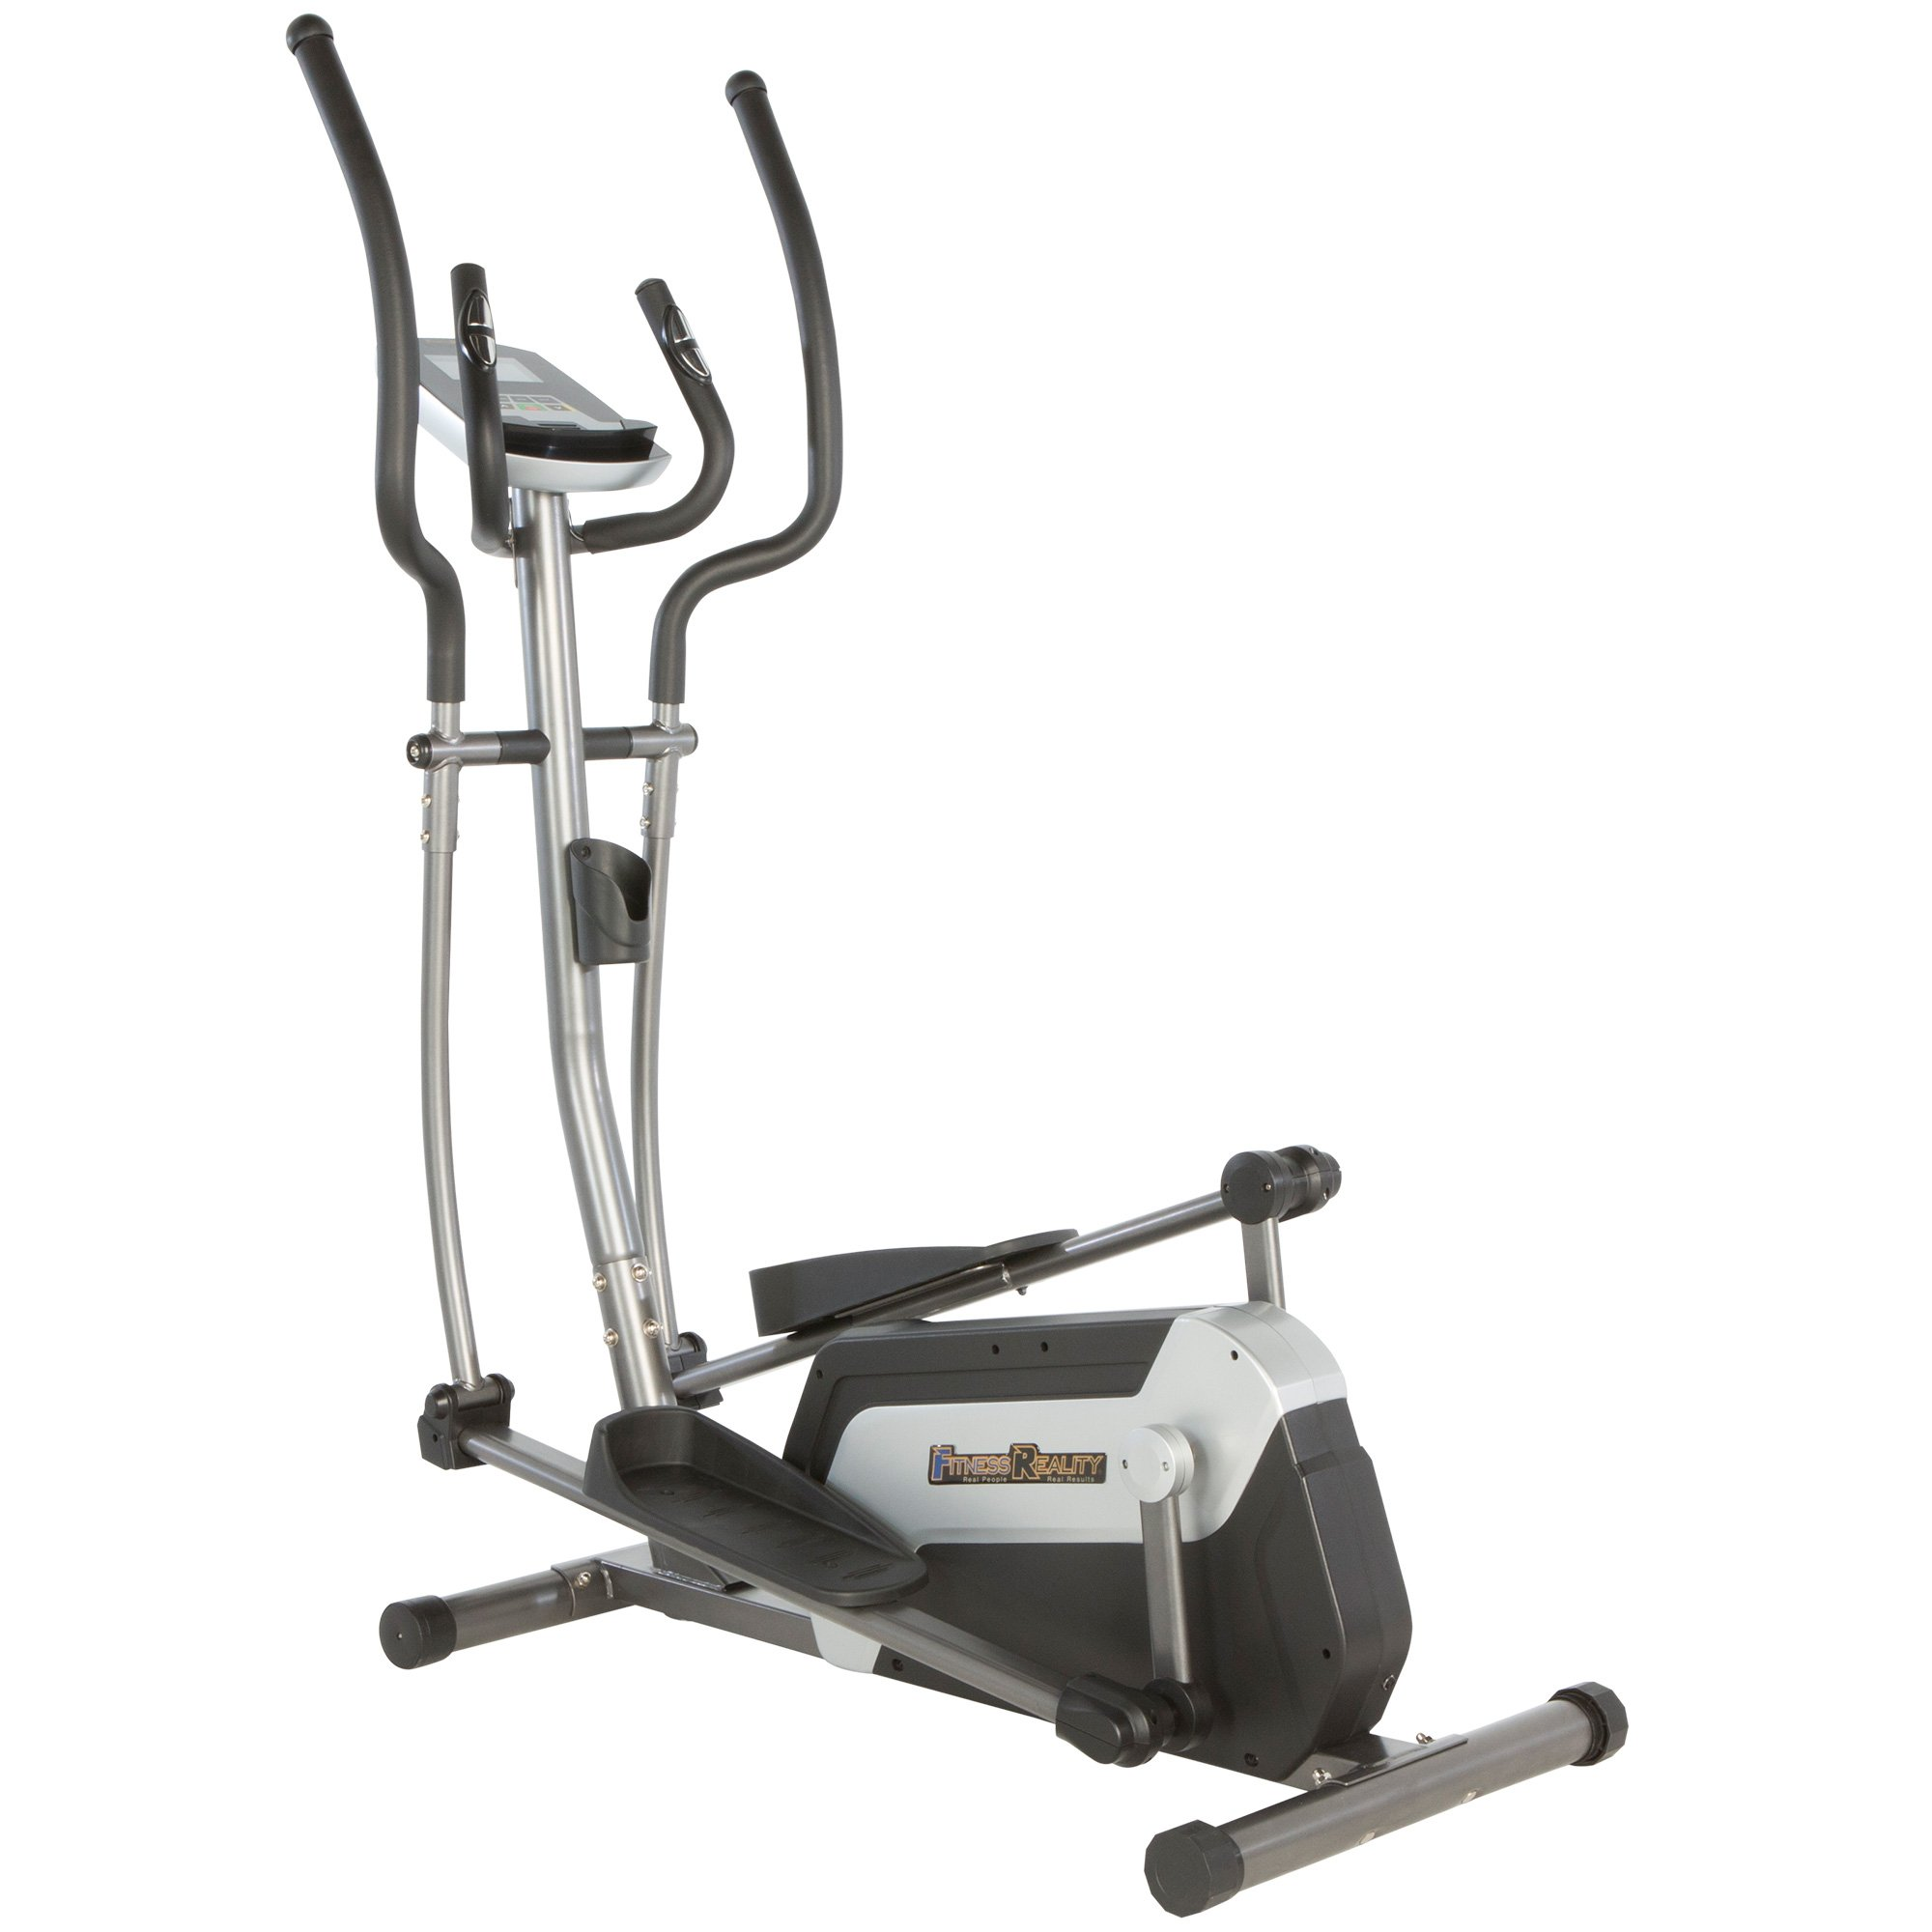 Fitness Reality E5500XL Magnetic Elliptical Trainer with Comfortable 18'' Stride by Fitness Reality (Image #15)